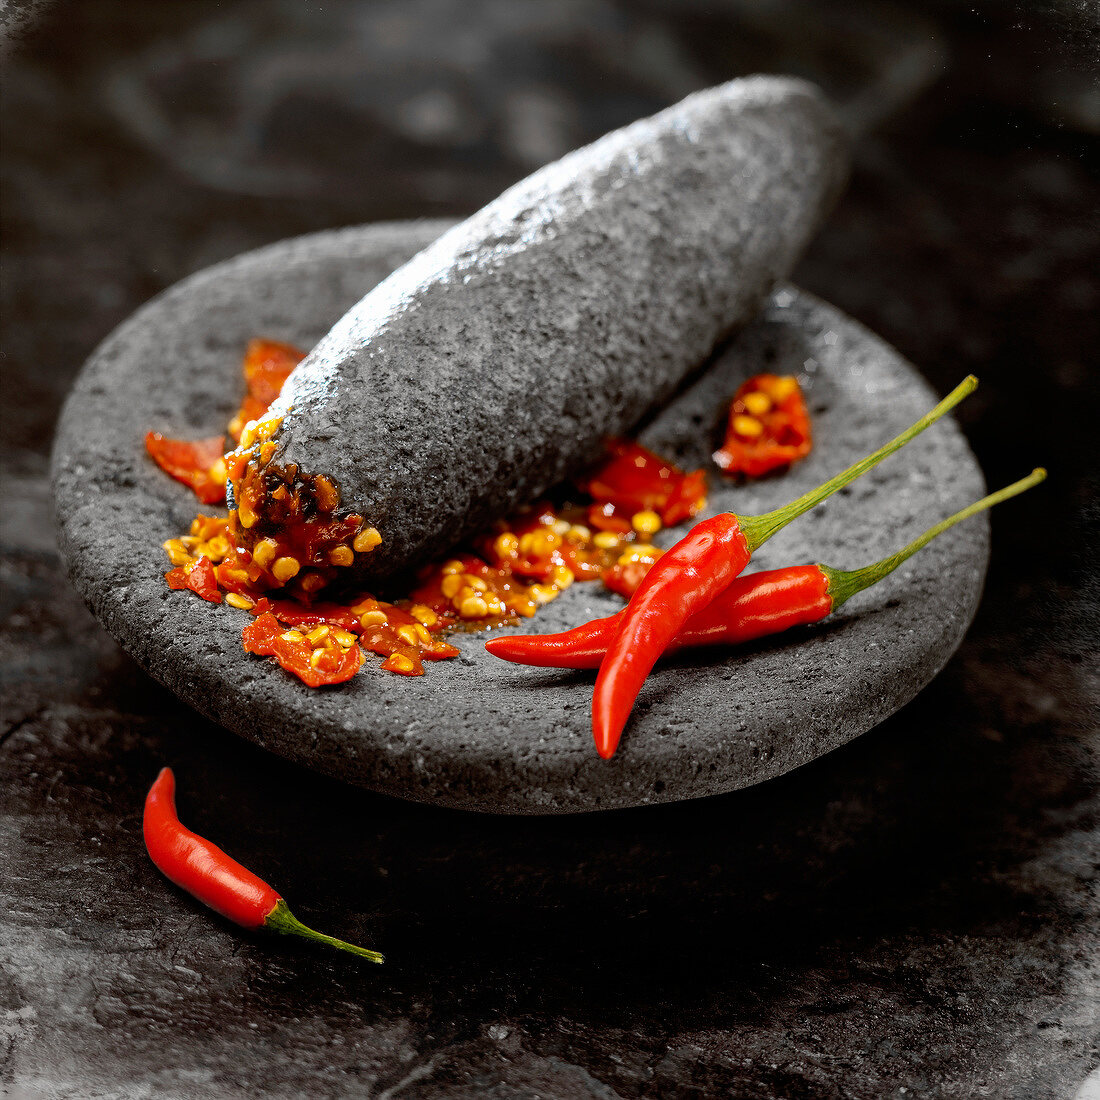 Crushed red peppers in a black volcanic rock mortar